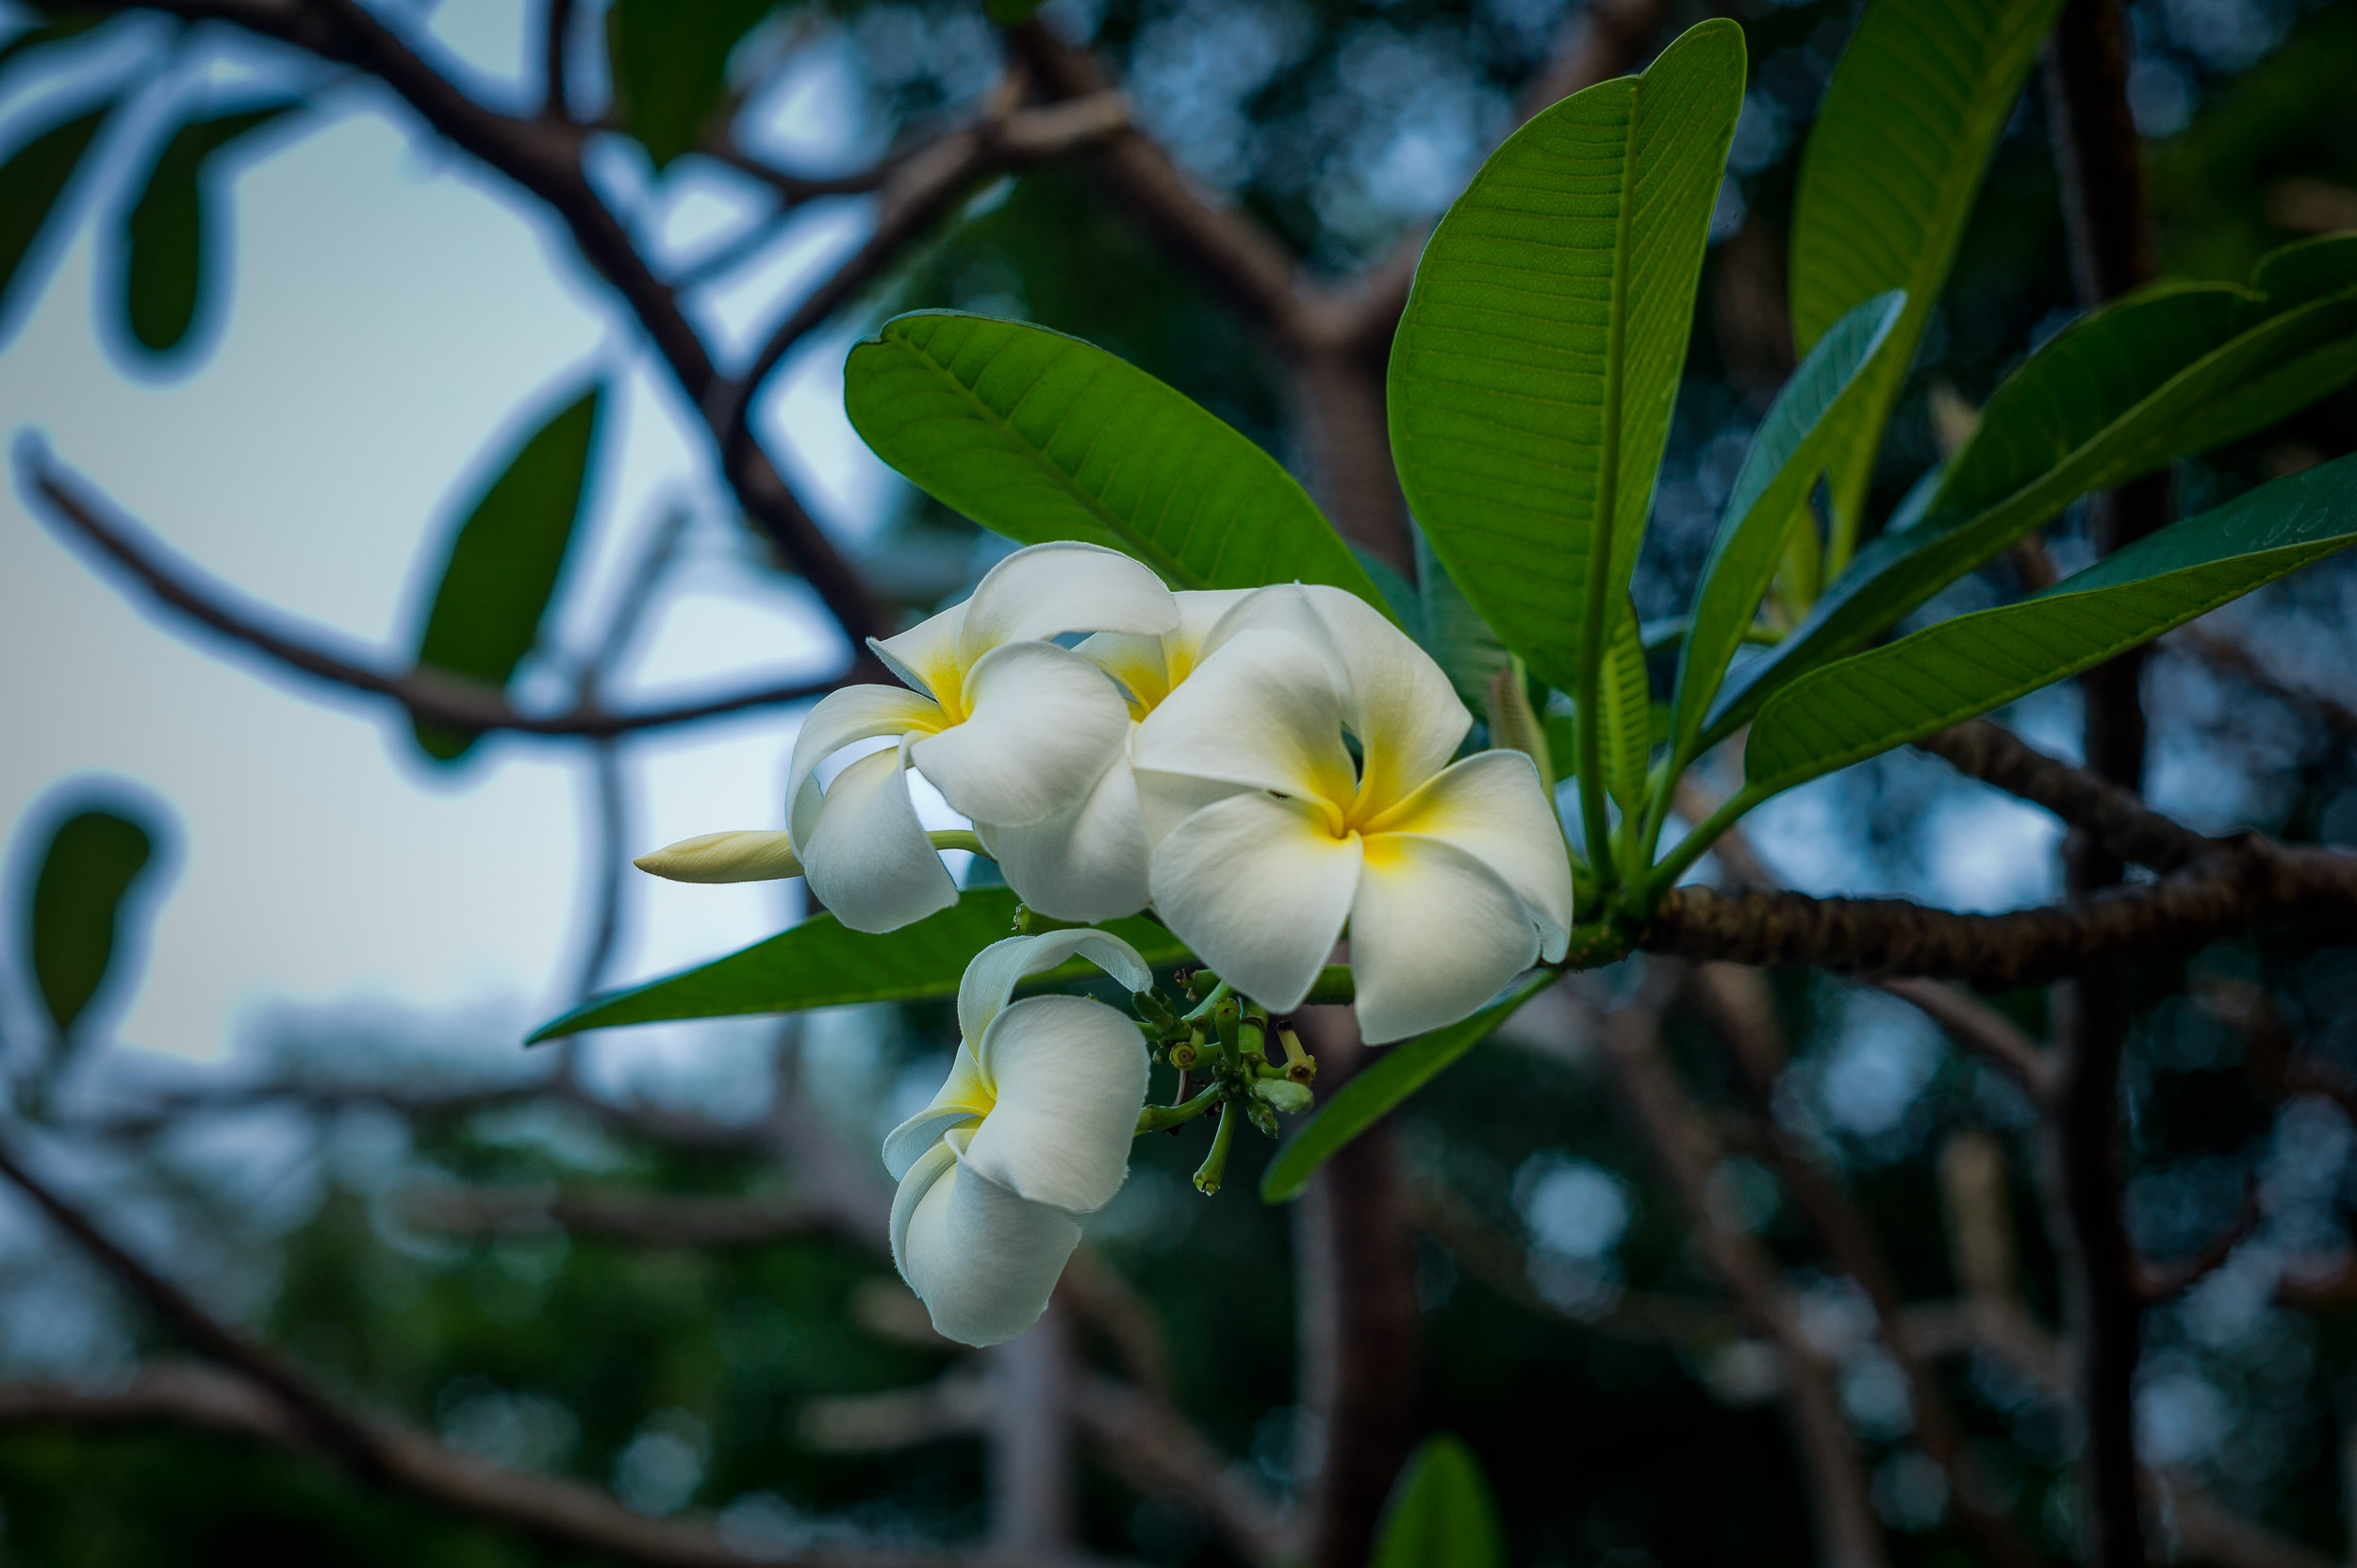 A flower at dusk in    Lumphini Park    in the centre of    Bangkok, Thailand   .